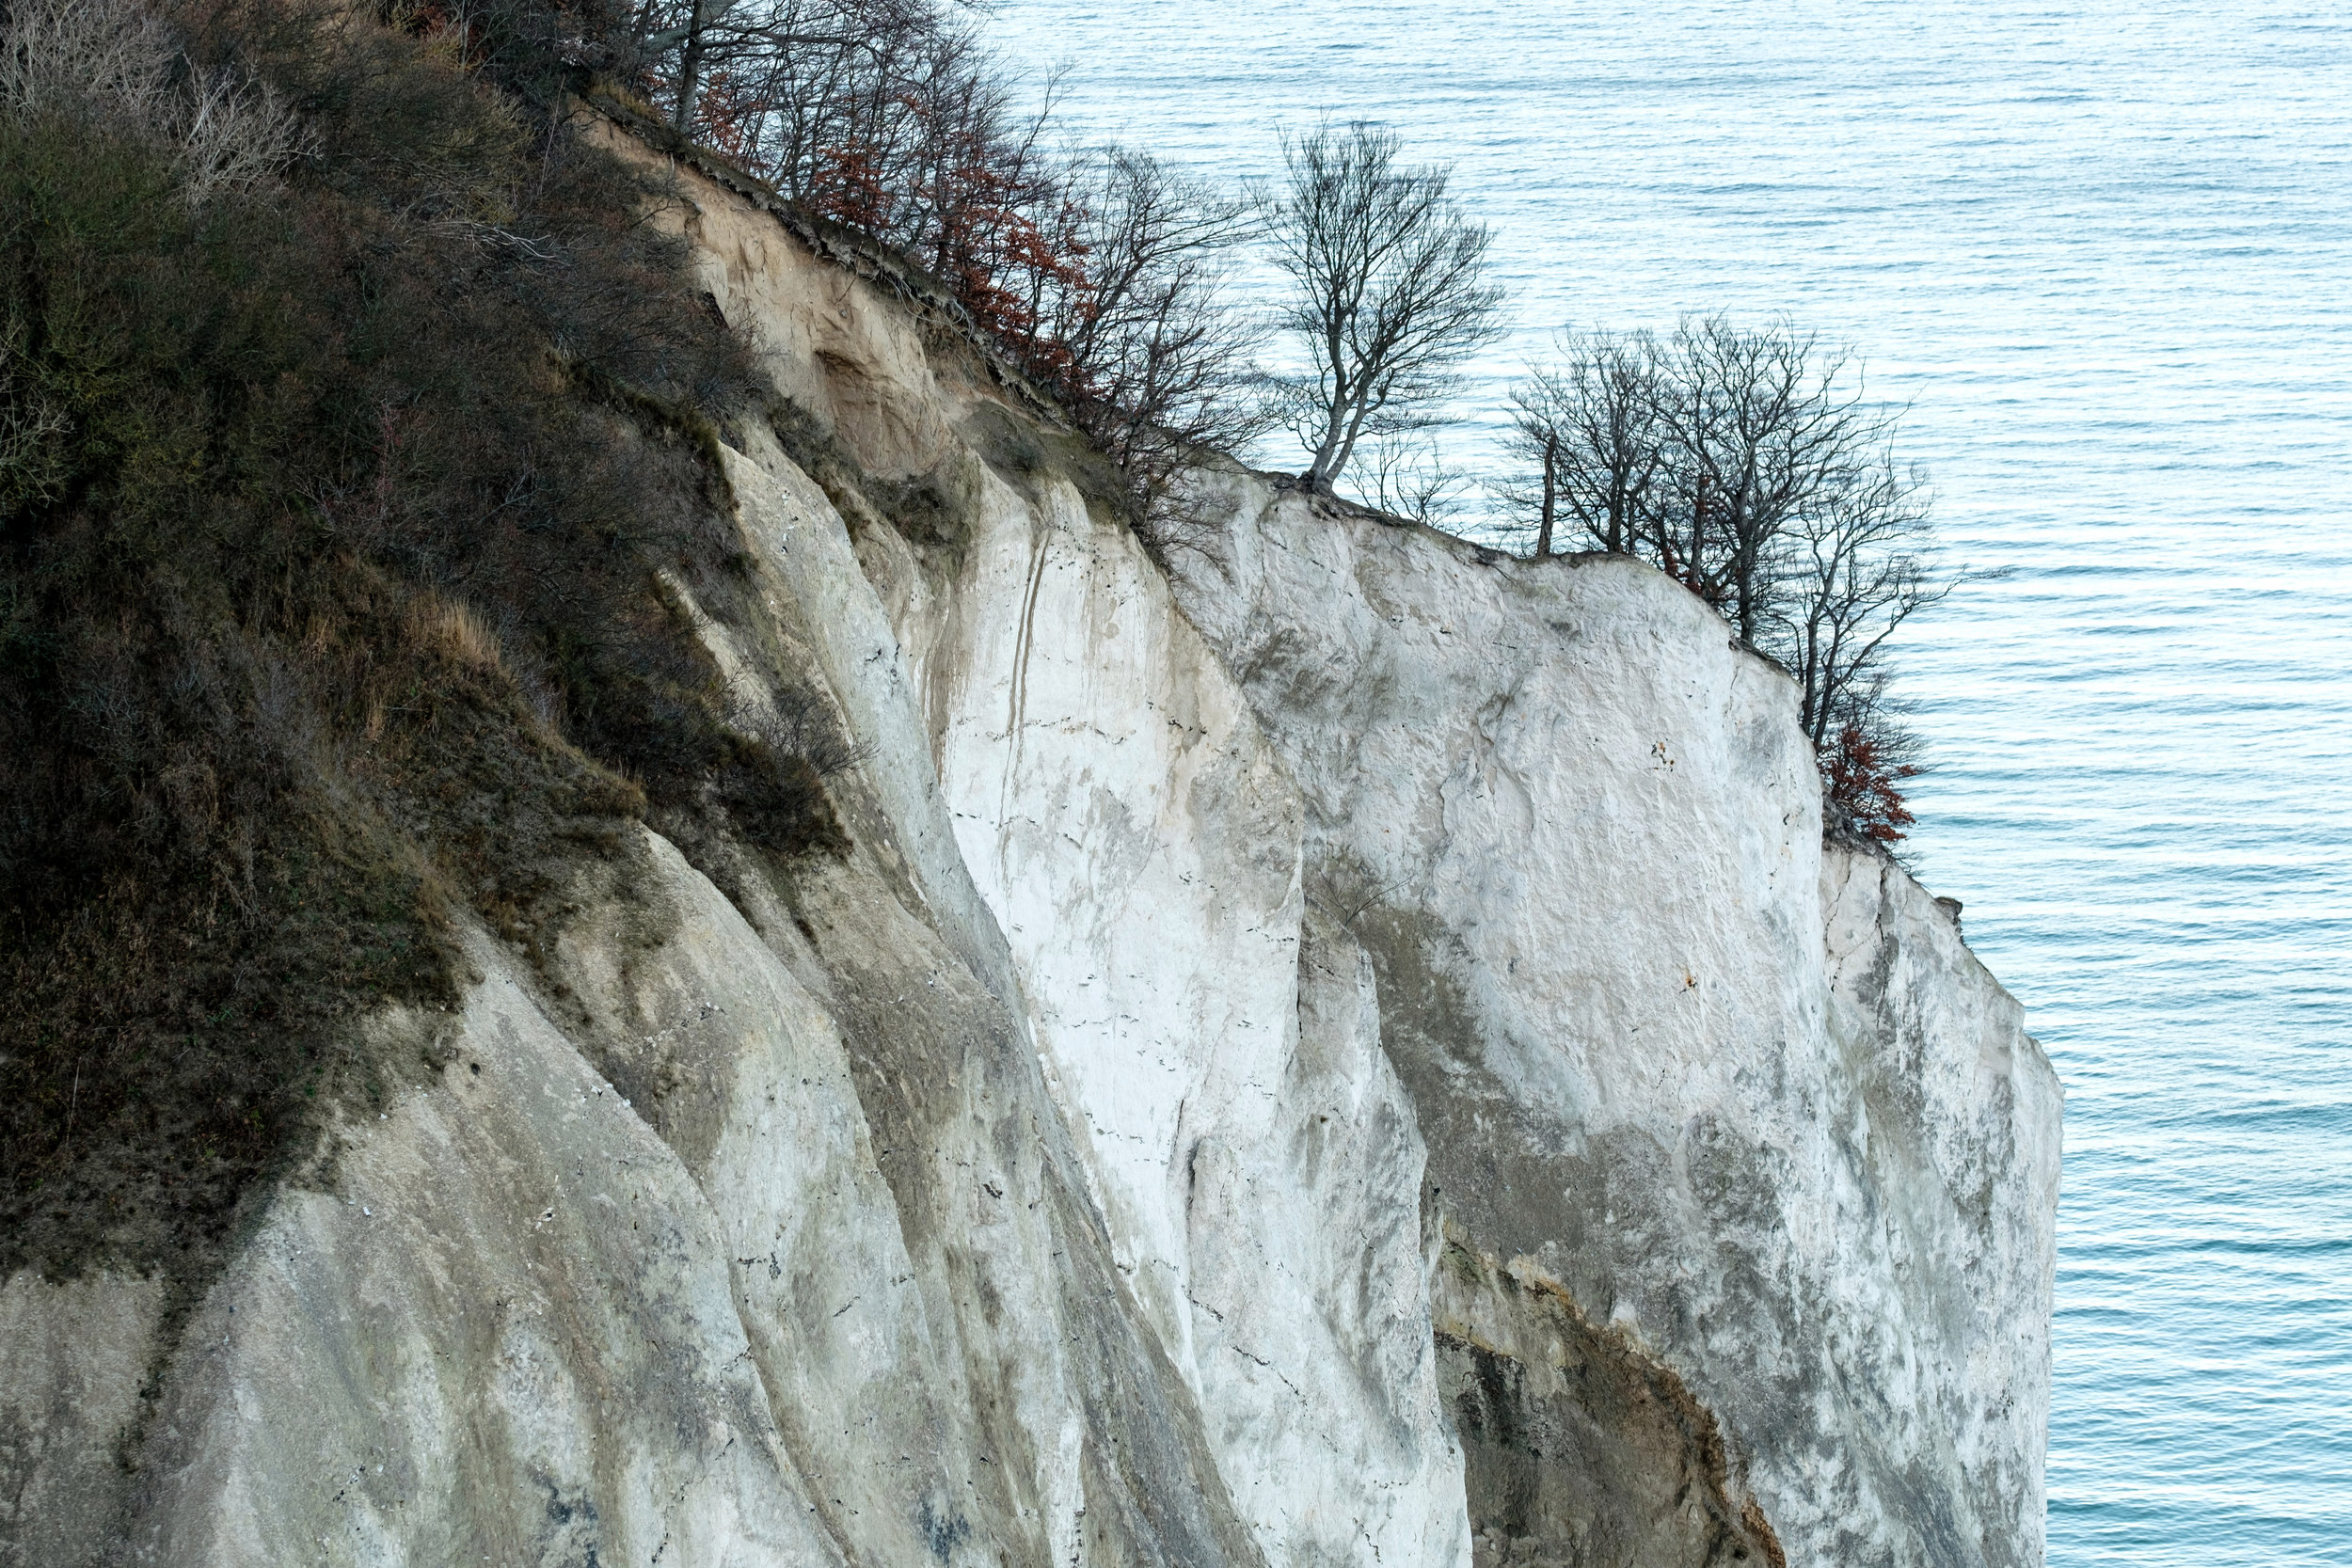 The steep Cliffs of Moen, Møns Klint in Denmark on the Baltic Sea